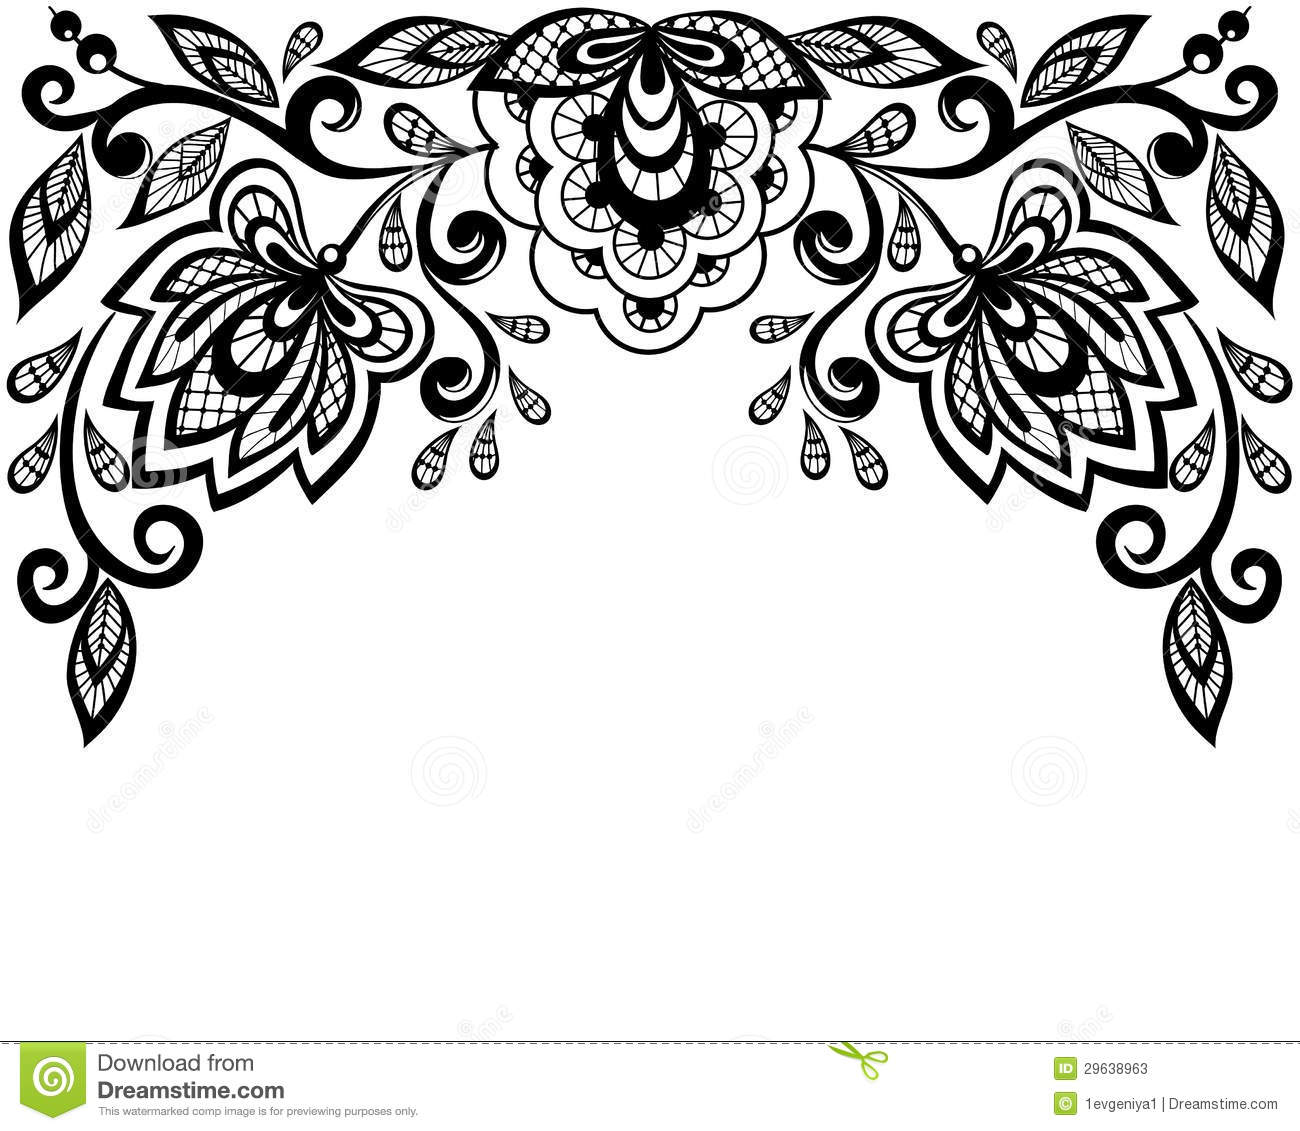 Free download best on. Lace clipart black and white